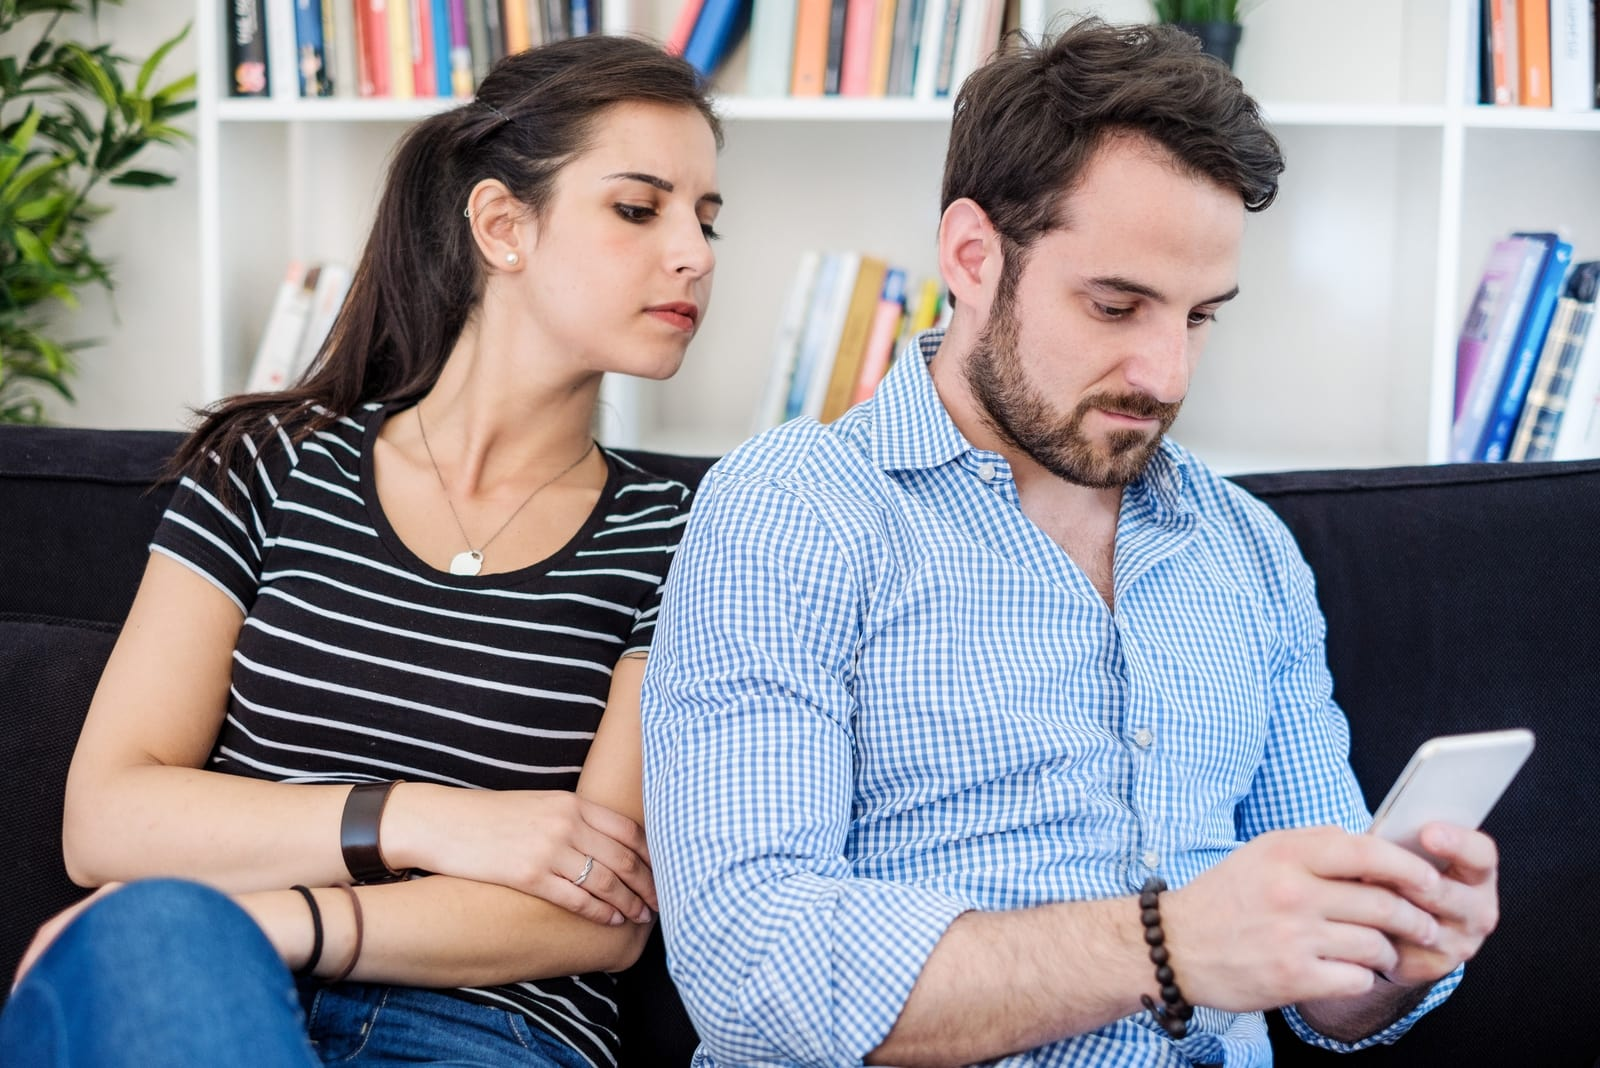 woman looking at man's phone while sitting on sofa